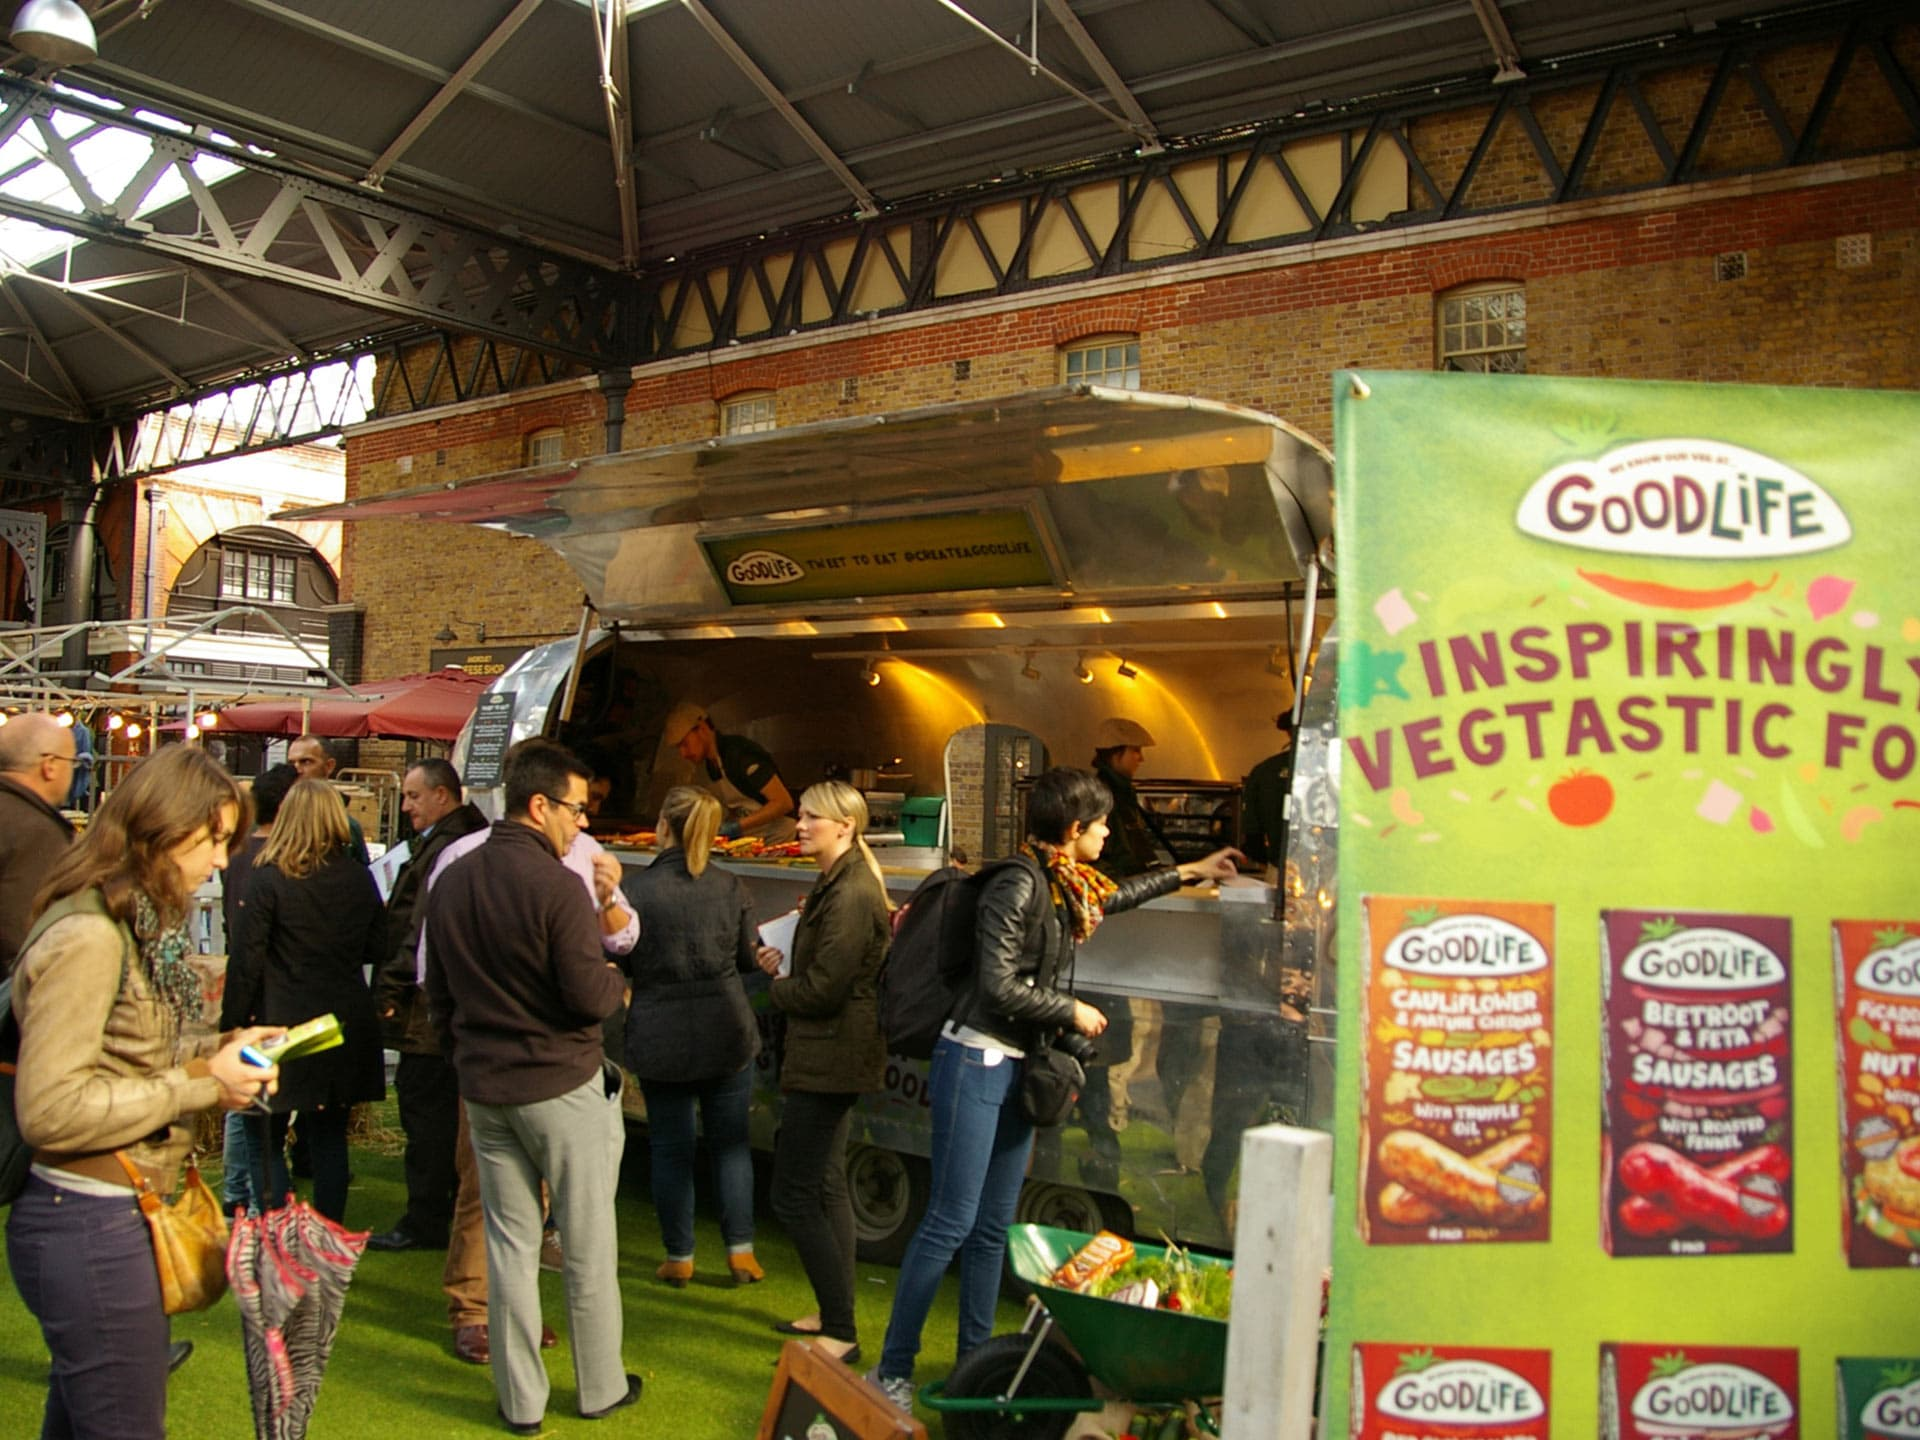 goodlife-foods-case-study---social-media-integration-with-experiential Marketing-product sampling-and-pr-media-coverage-04